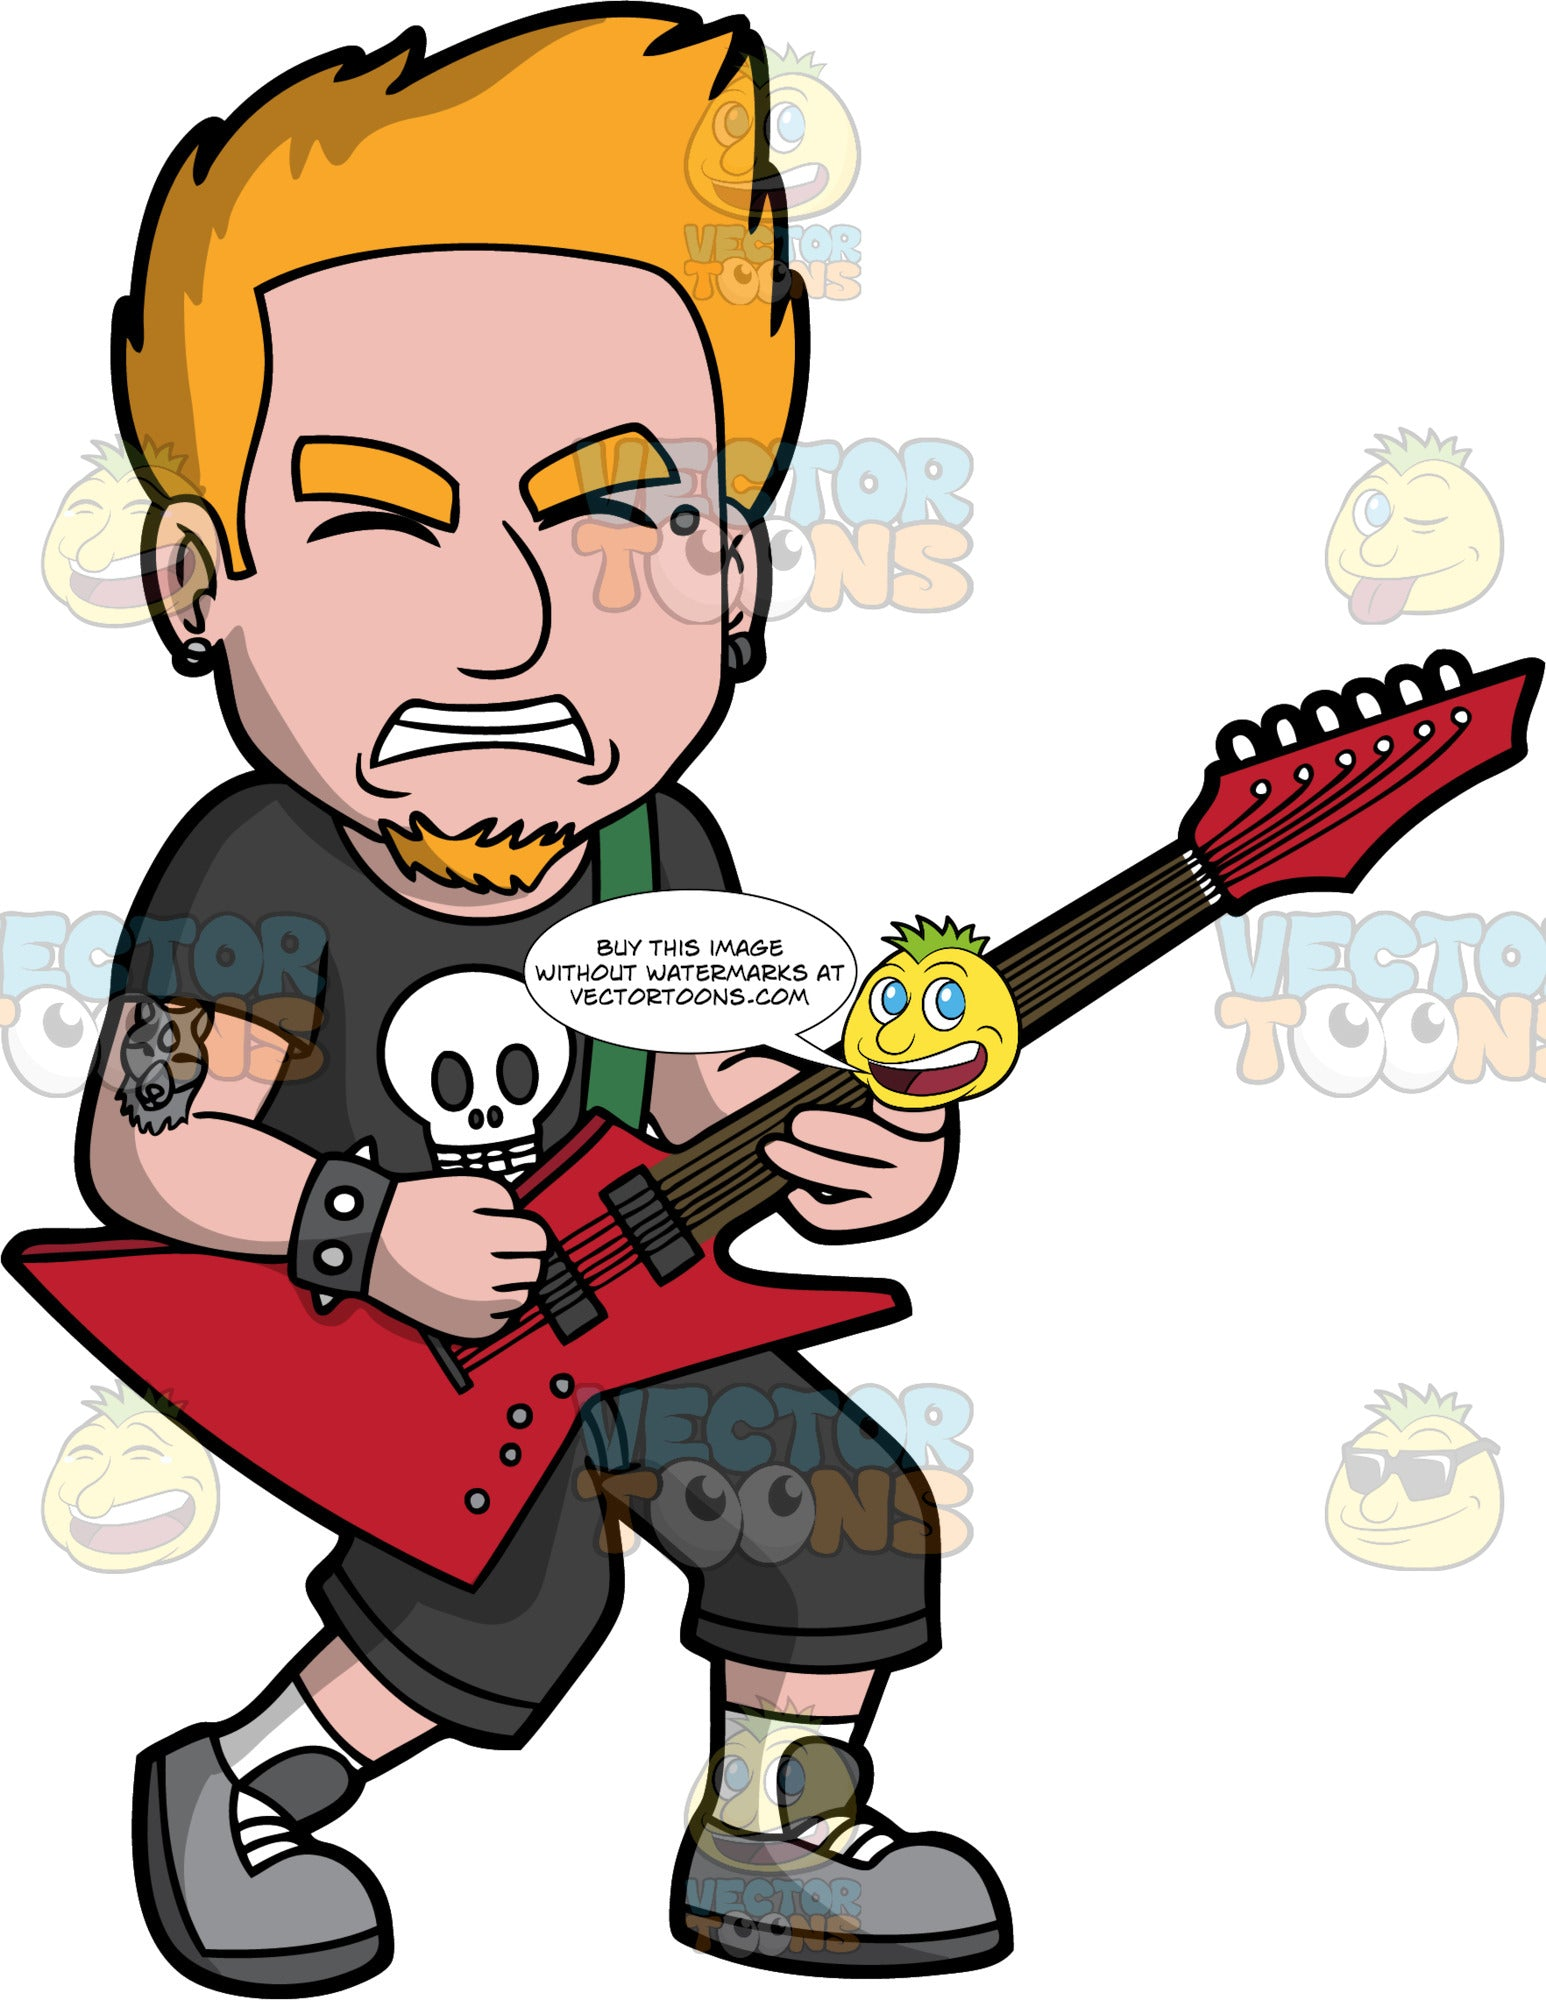 A Man Playing Heavy Metal On An Electric Guitar. A man with orange hair and a goatee, wearing black shorts, a black t-shirt with a skull on it, and gray shoes, closes his eyes and grits his teeth as he plays heavy metal music on a red electric guitar